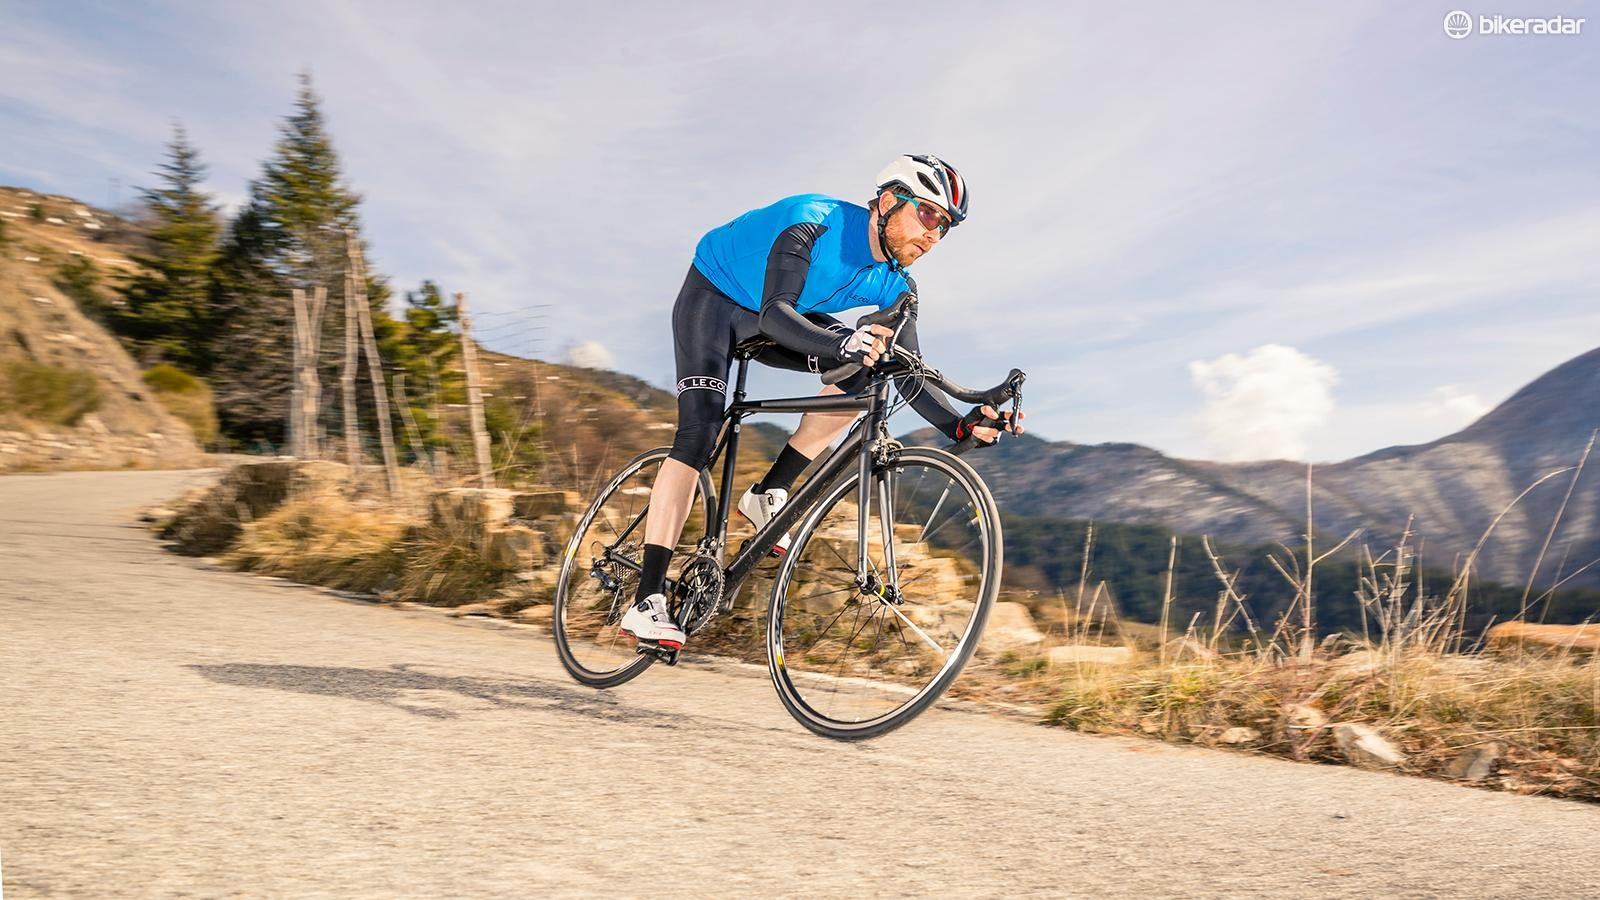 8d4c2ecd0a0 Cannondale CAAD12 Ultegra has a refined, highly tuned aluminium frame